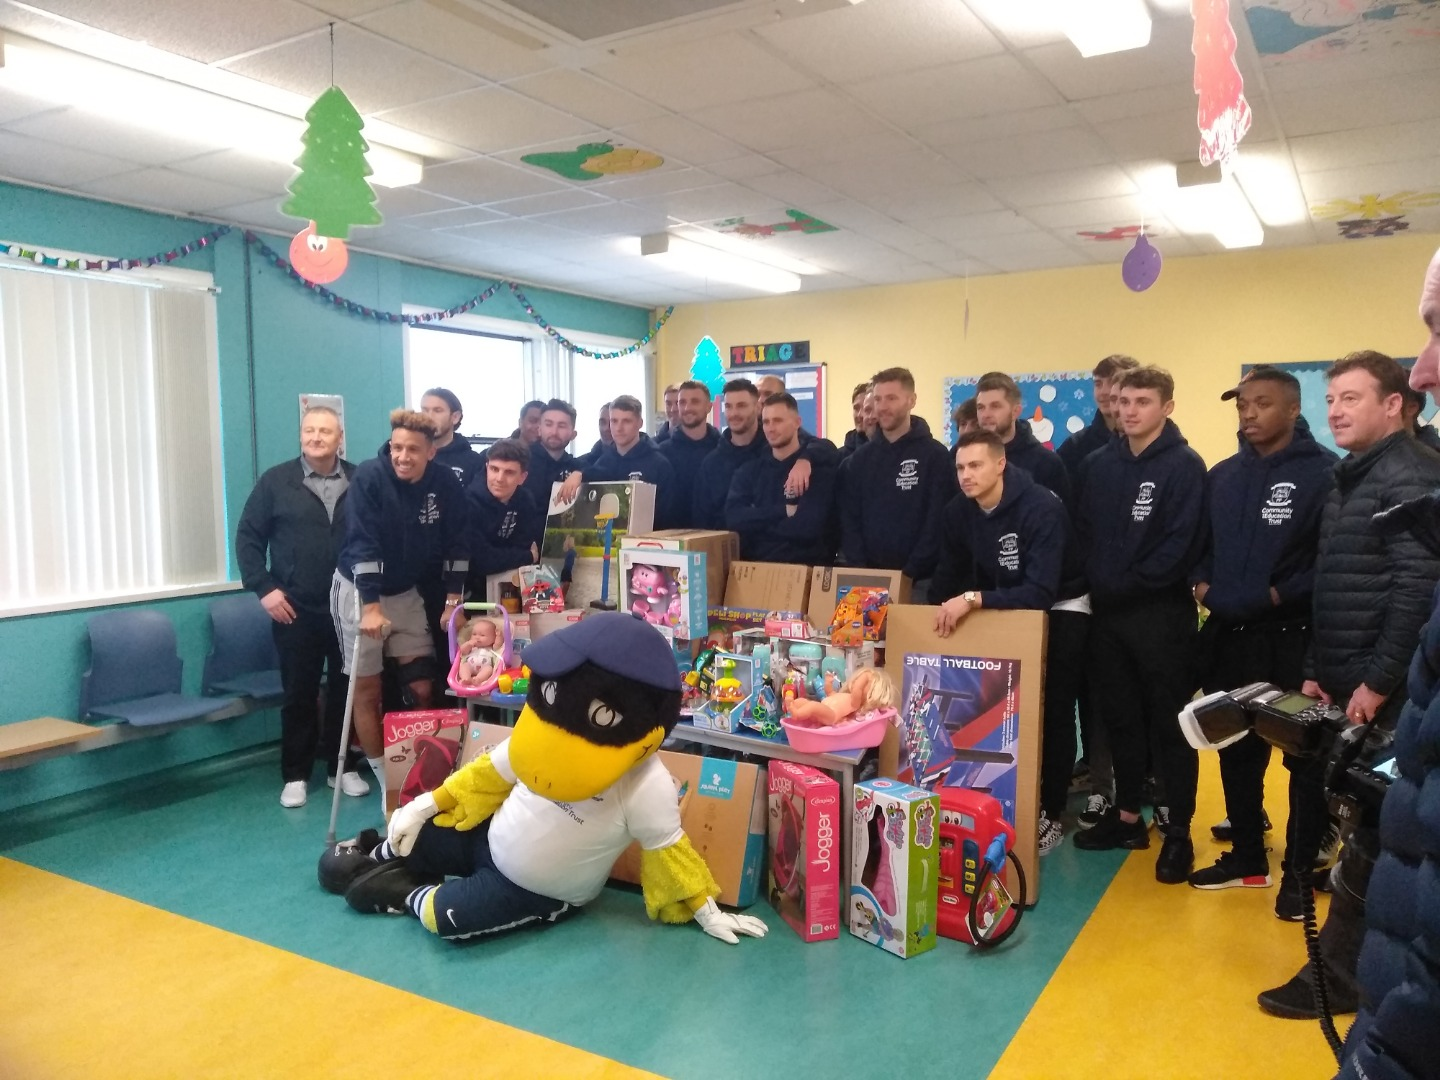 Preston North End footballers visit children's ward